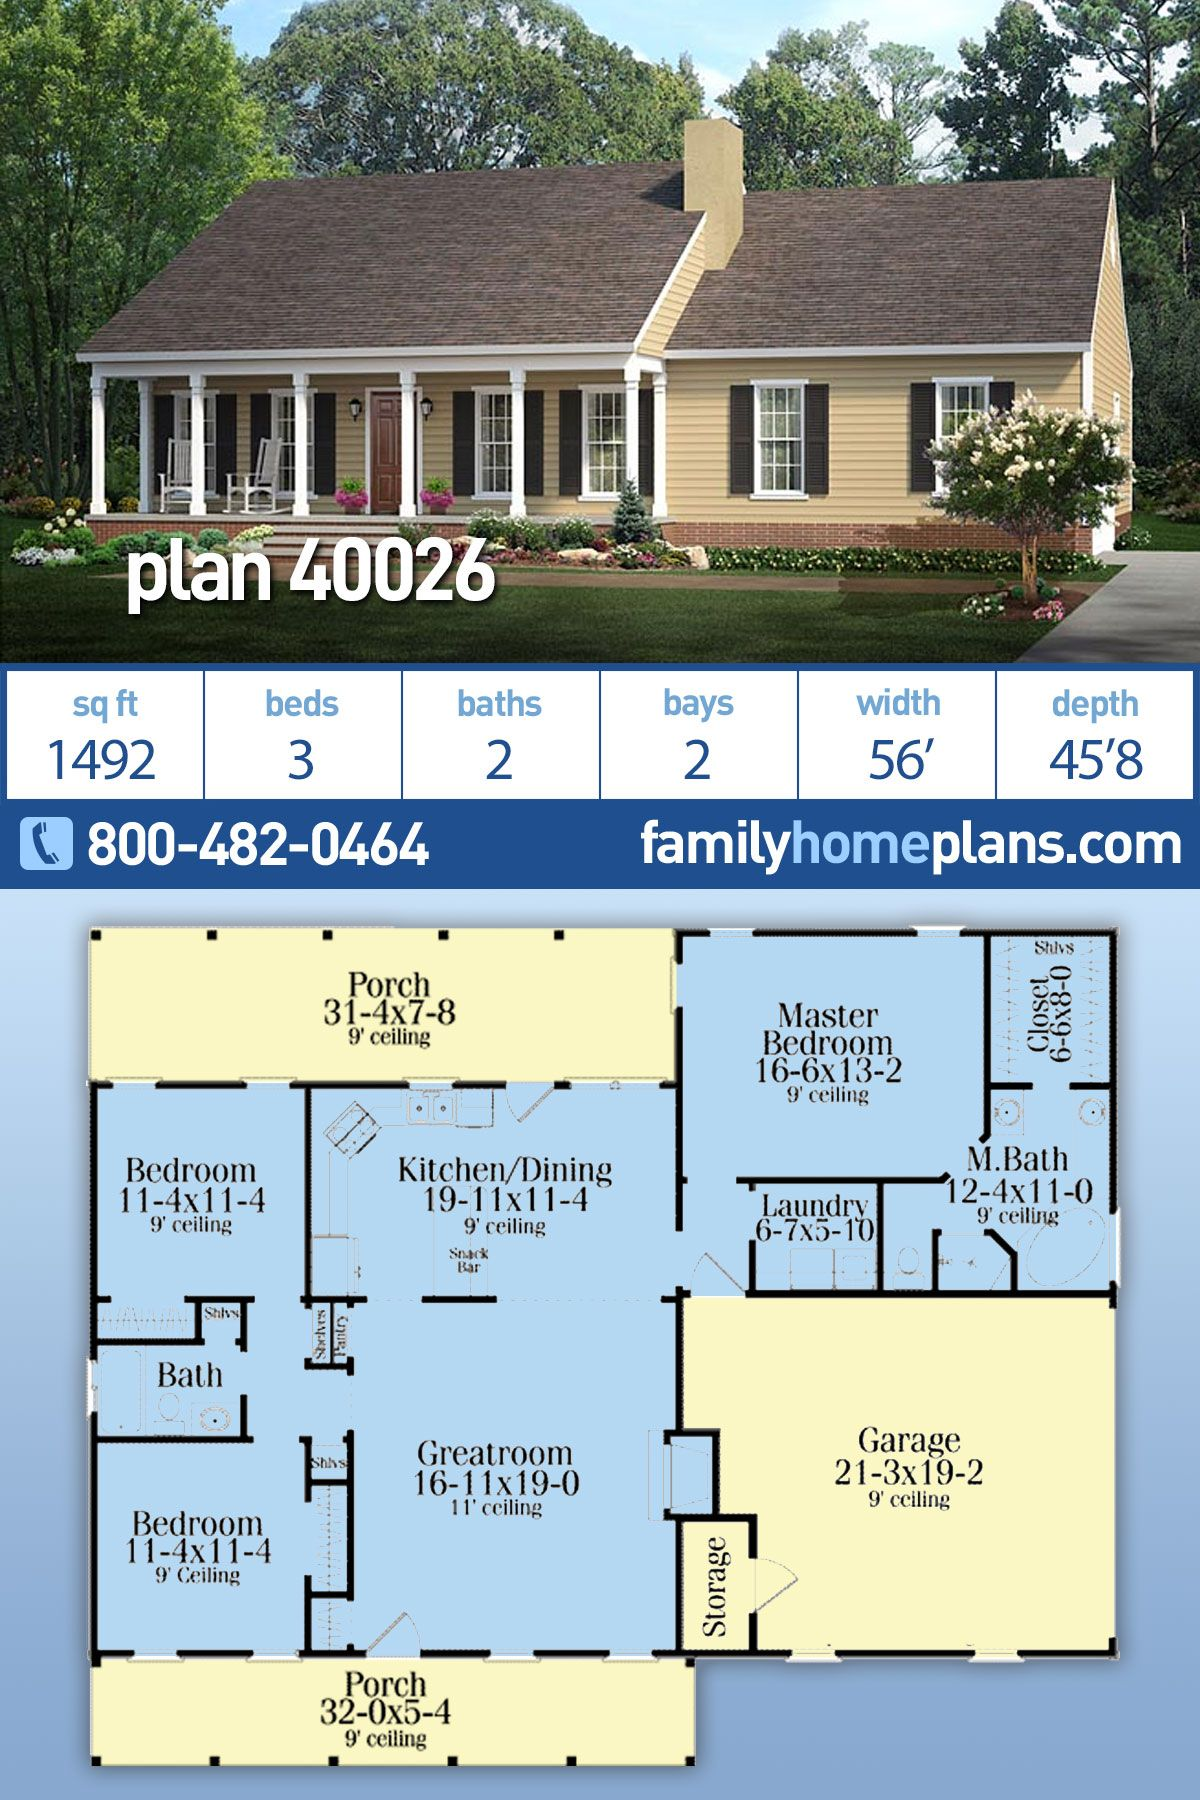 Country Ranch Style House Plan 40026 With 3 Bed 2 Bath 2 Car Garage Ranch House Designs Simple Ranch House Plans Family House Plans